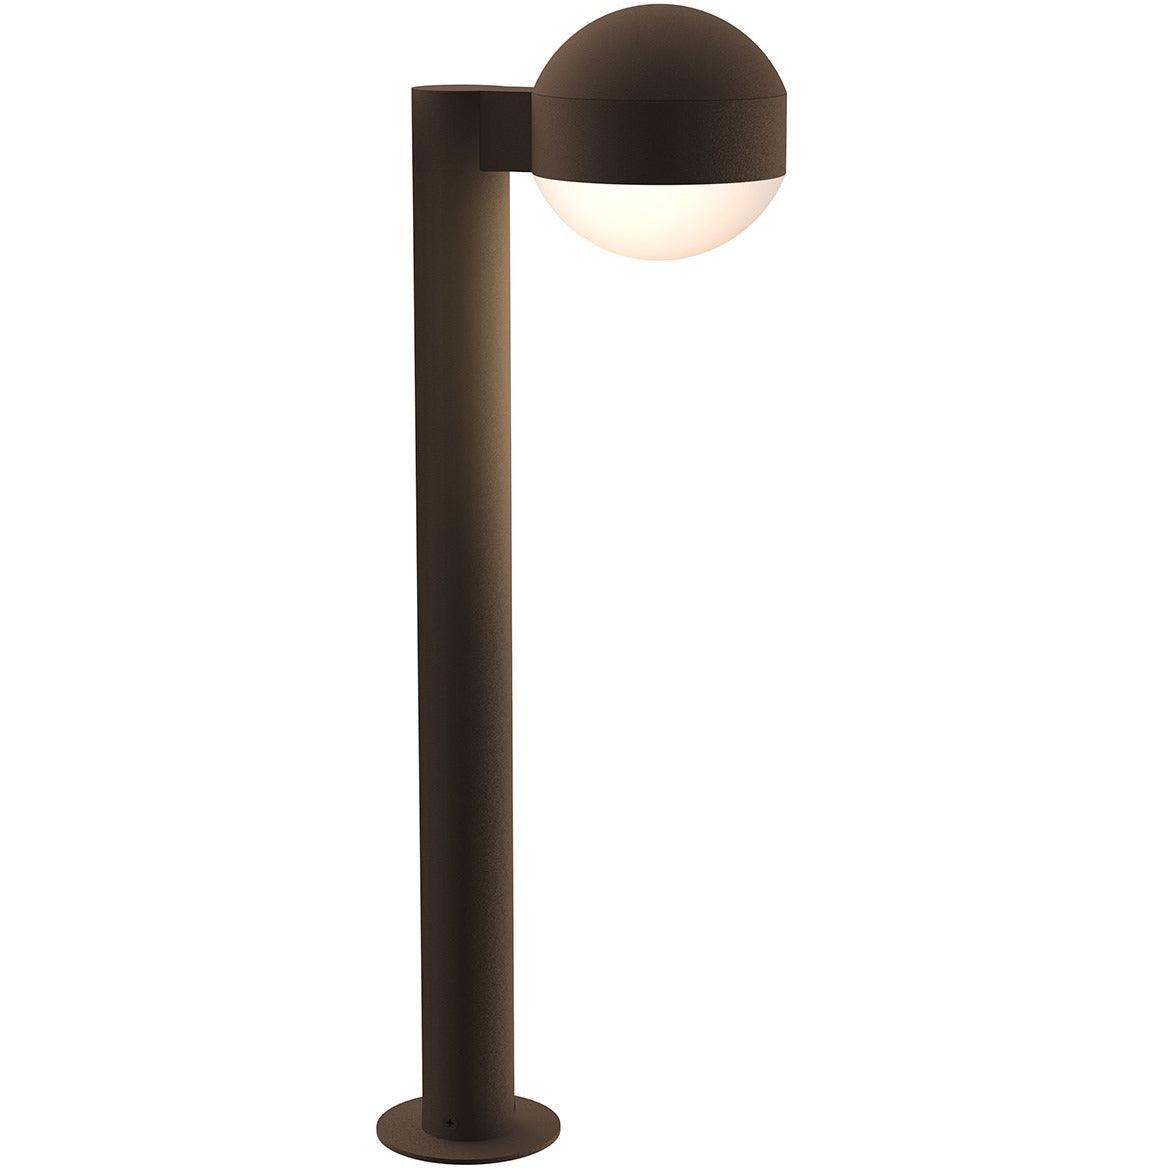 Sonneman - A Way of Light - 7304.DC.DL.72-WL - LED Bollard - REALS - Textured Bronze